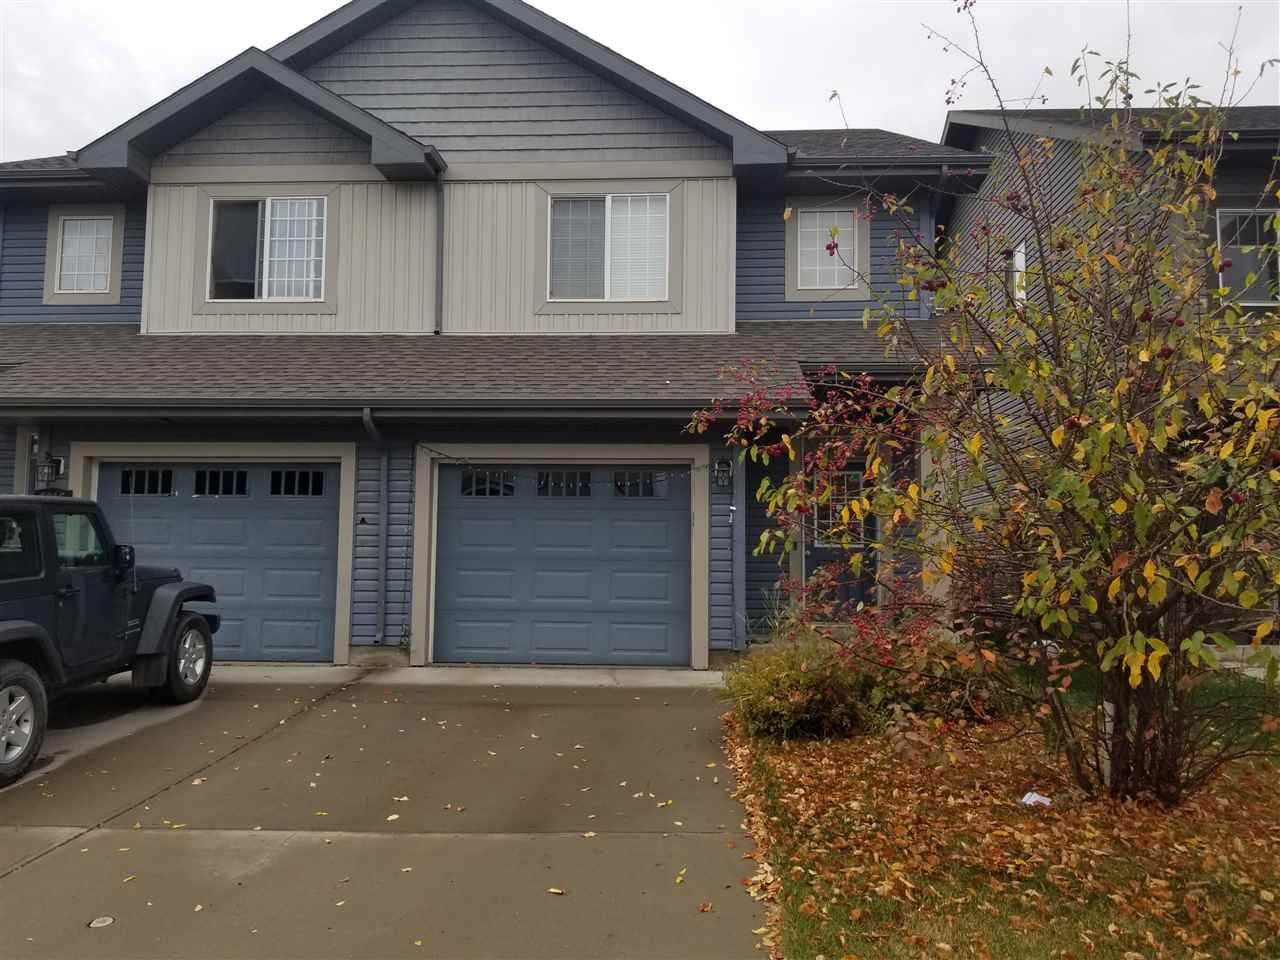 Main Photo: 6018 214 Street in Edmonton: Zone 58 House Half Duplex for sale : MLS®# E4225593